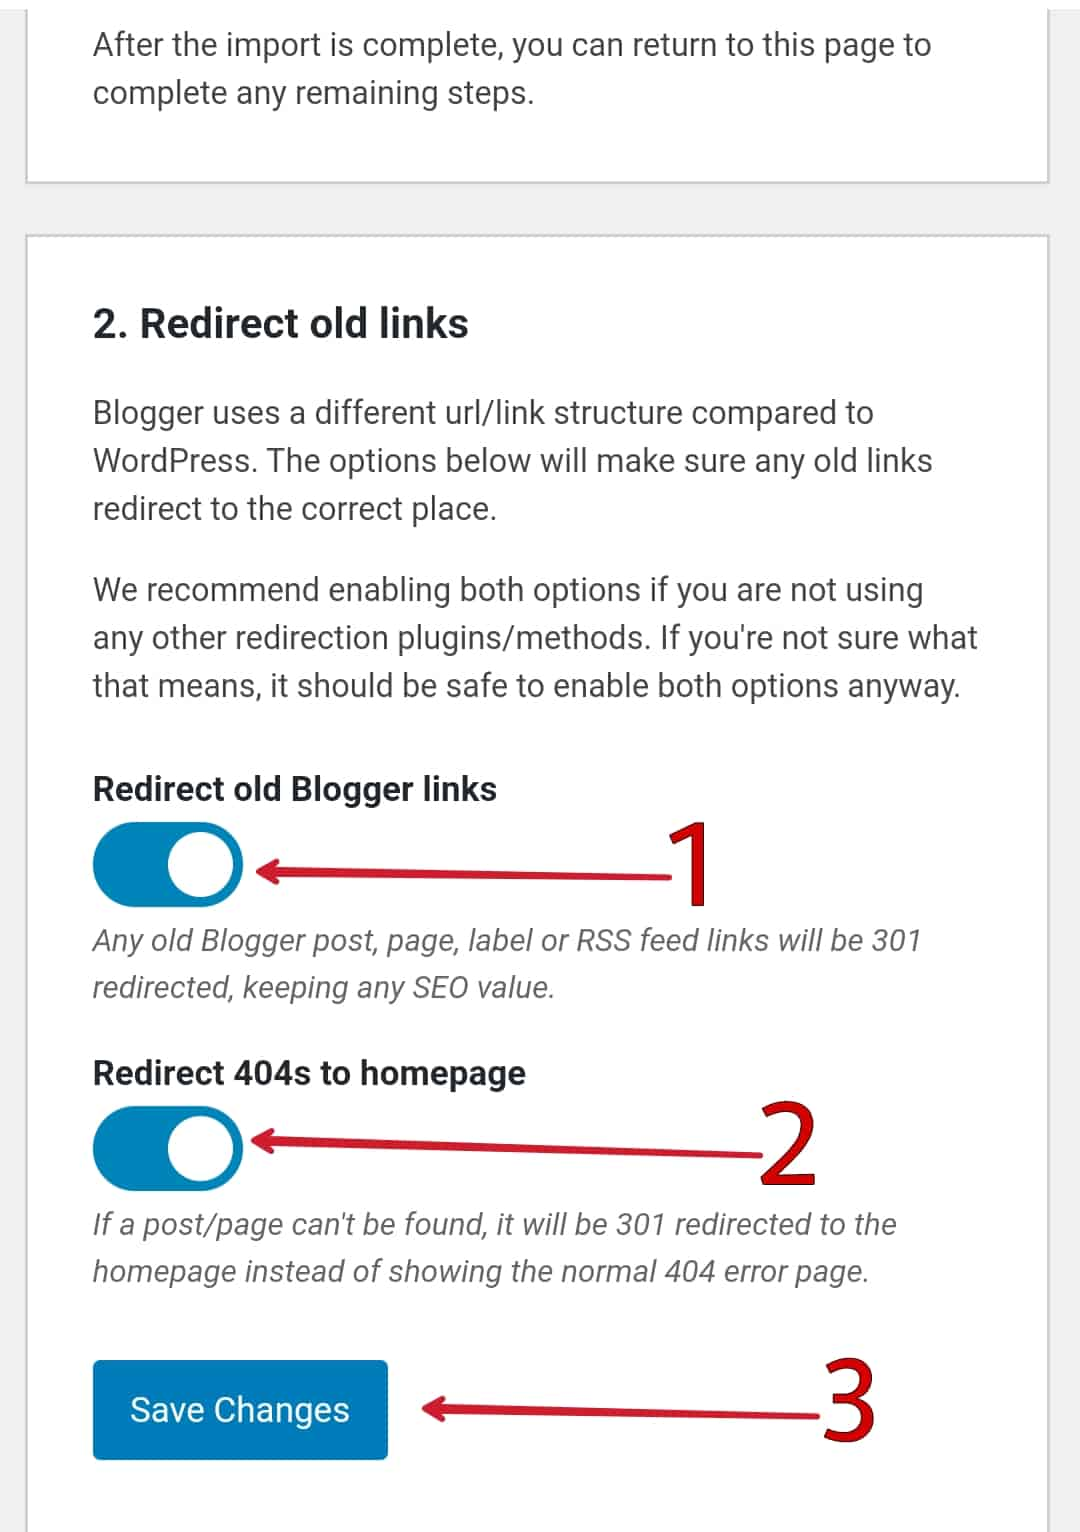 Enable Redirect old Blogger links & Redirect 404s to homepage